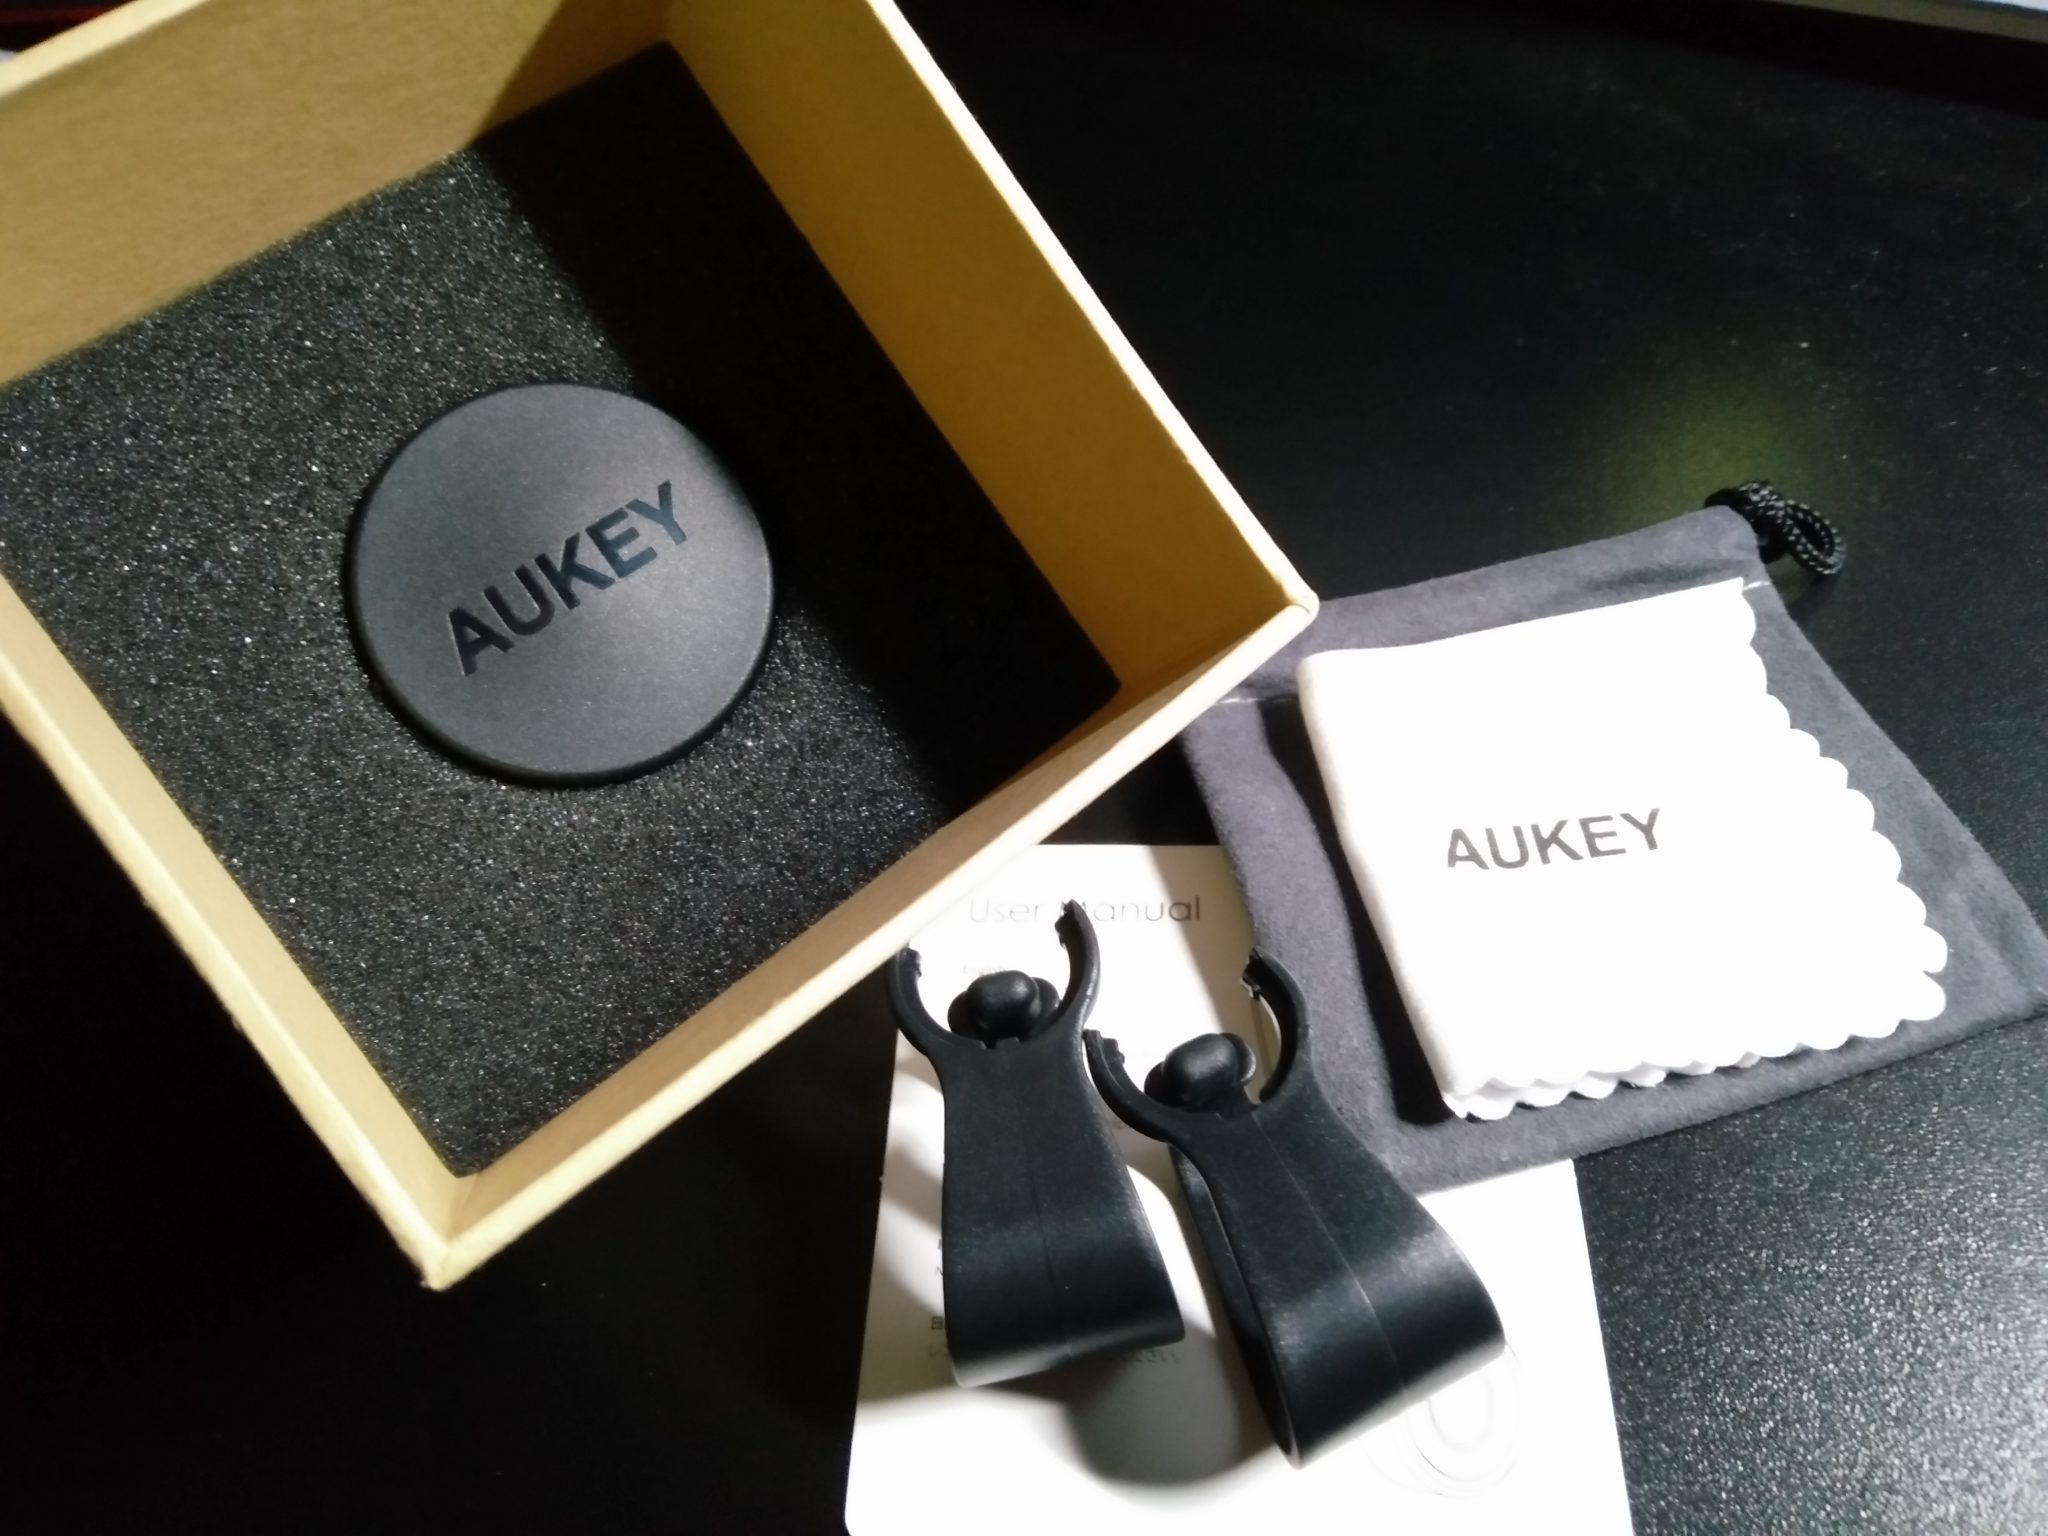 AUKEY PL-WD02 Lieferumfang